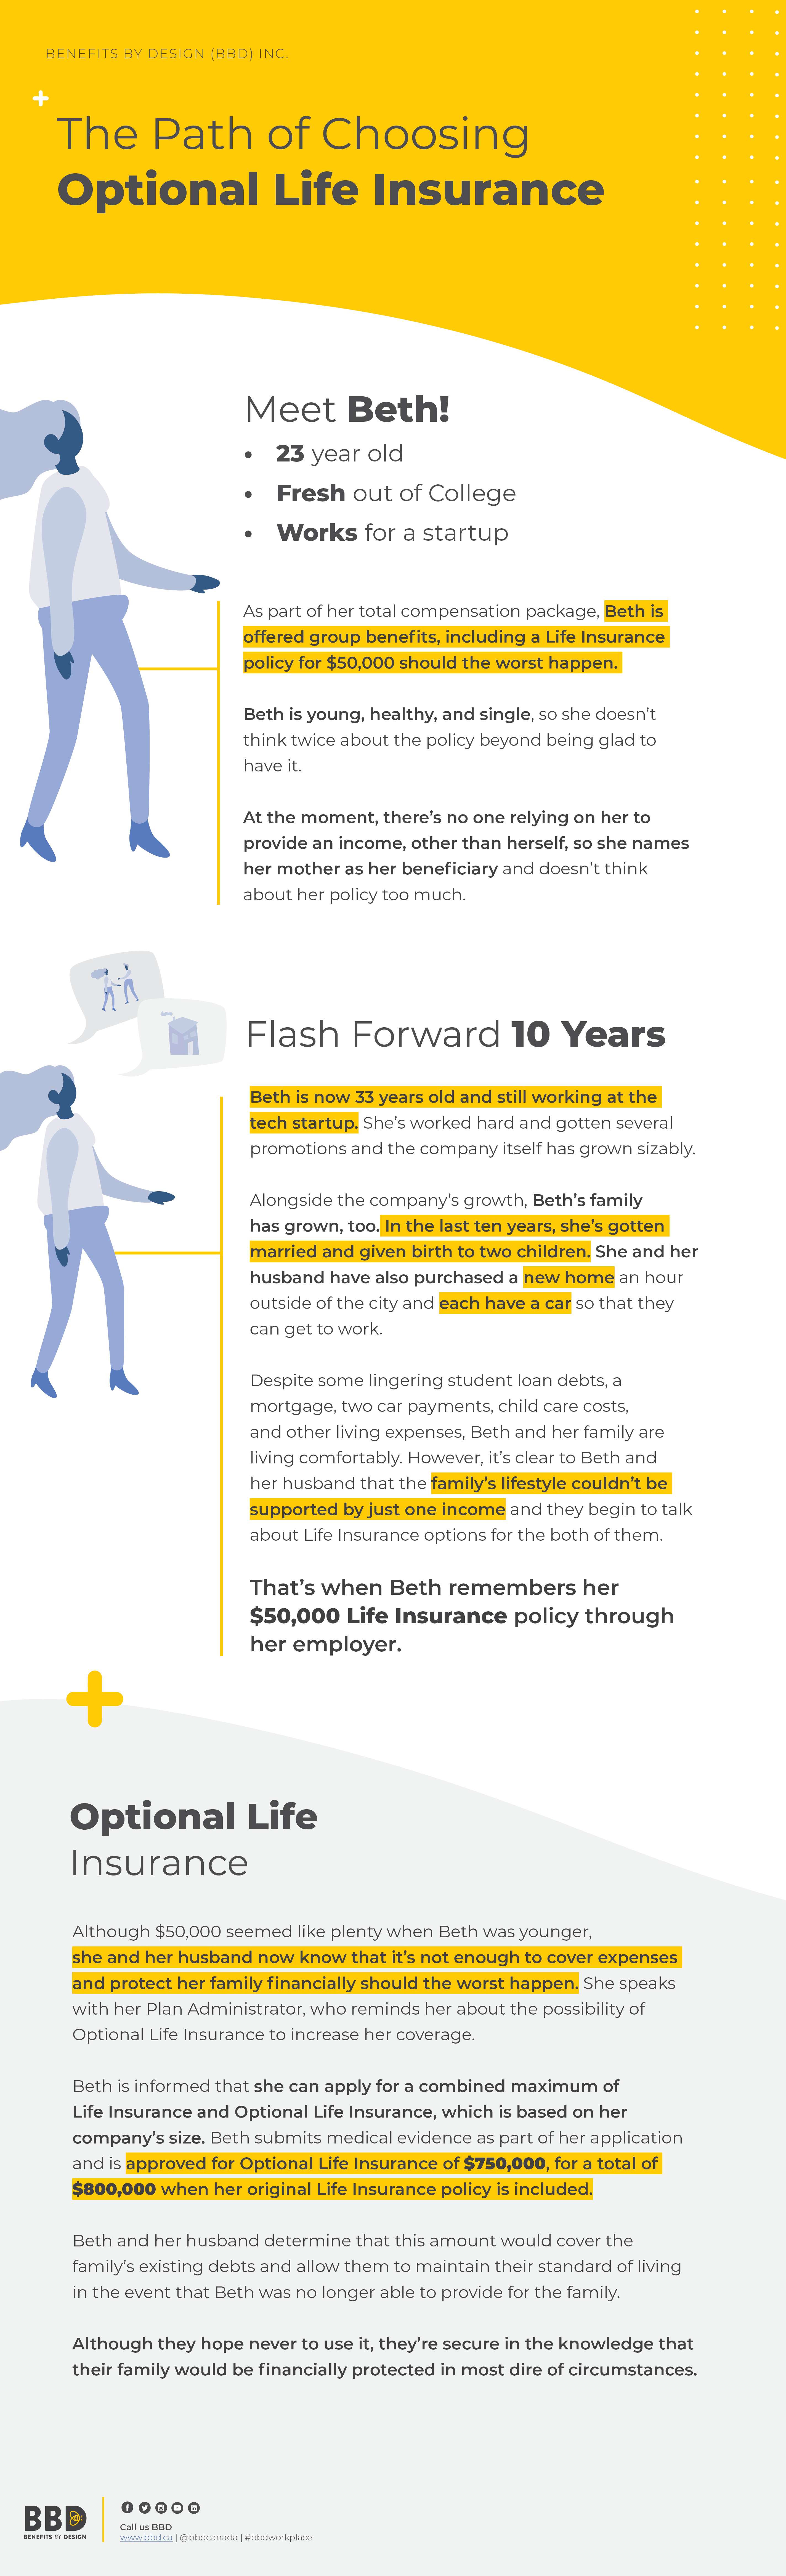 Optional Life Insurance Infographic, detailing the life path Beth and her husband are on and how Life Insurance fits into their plan for their family.